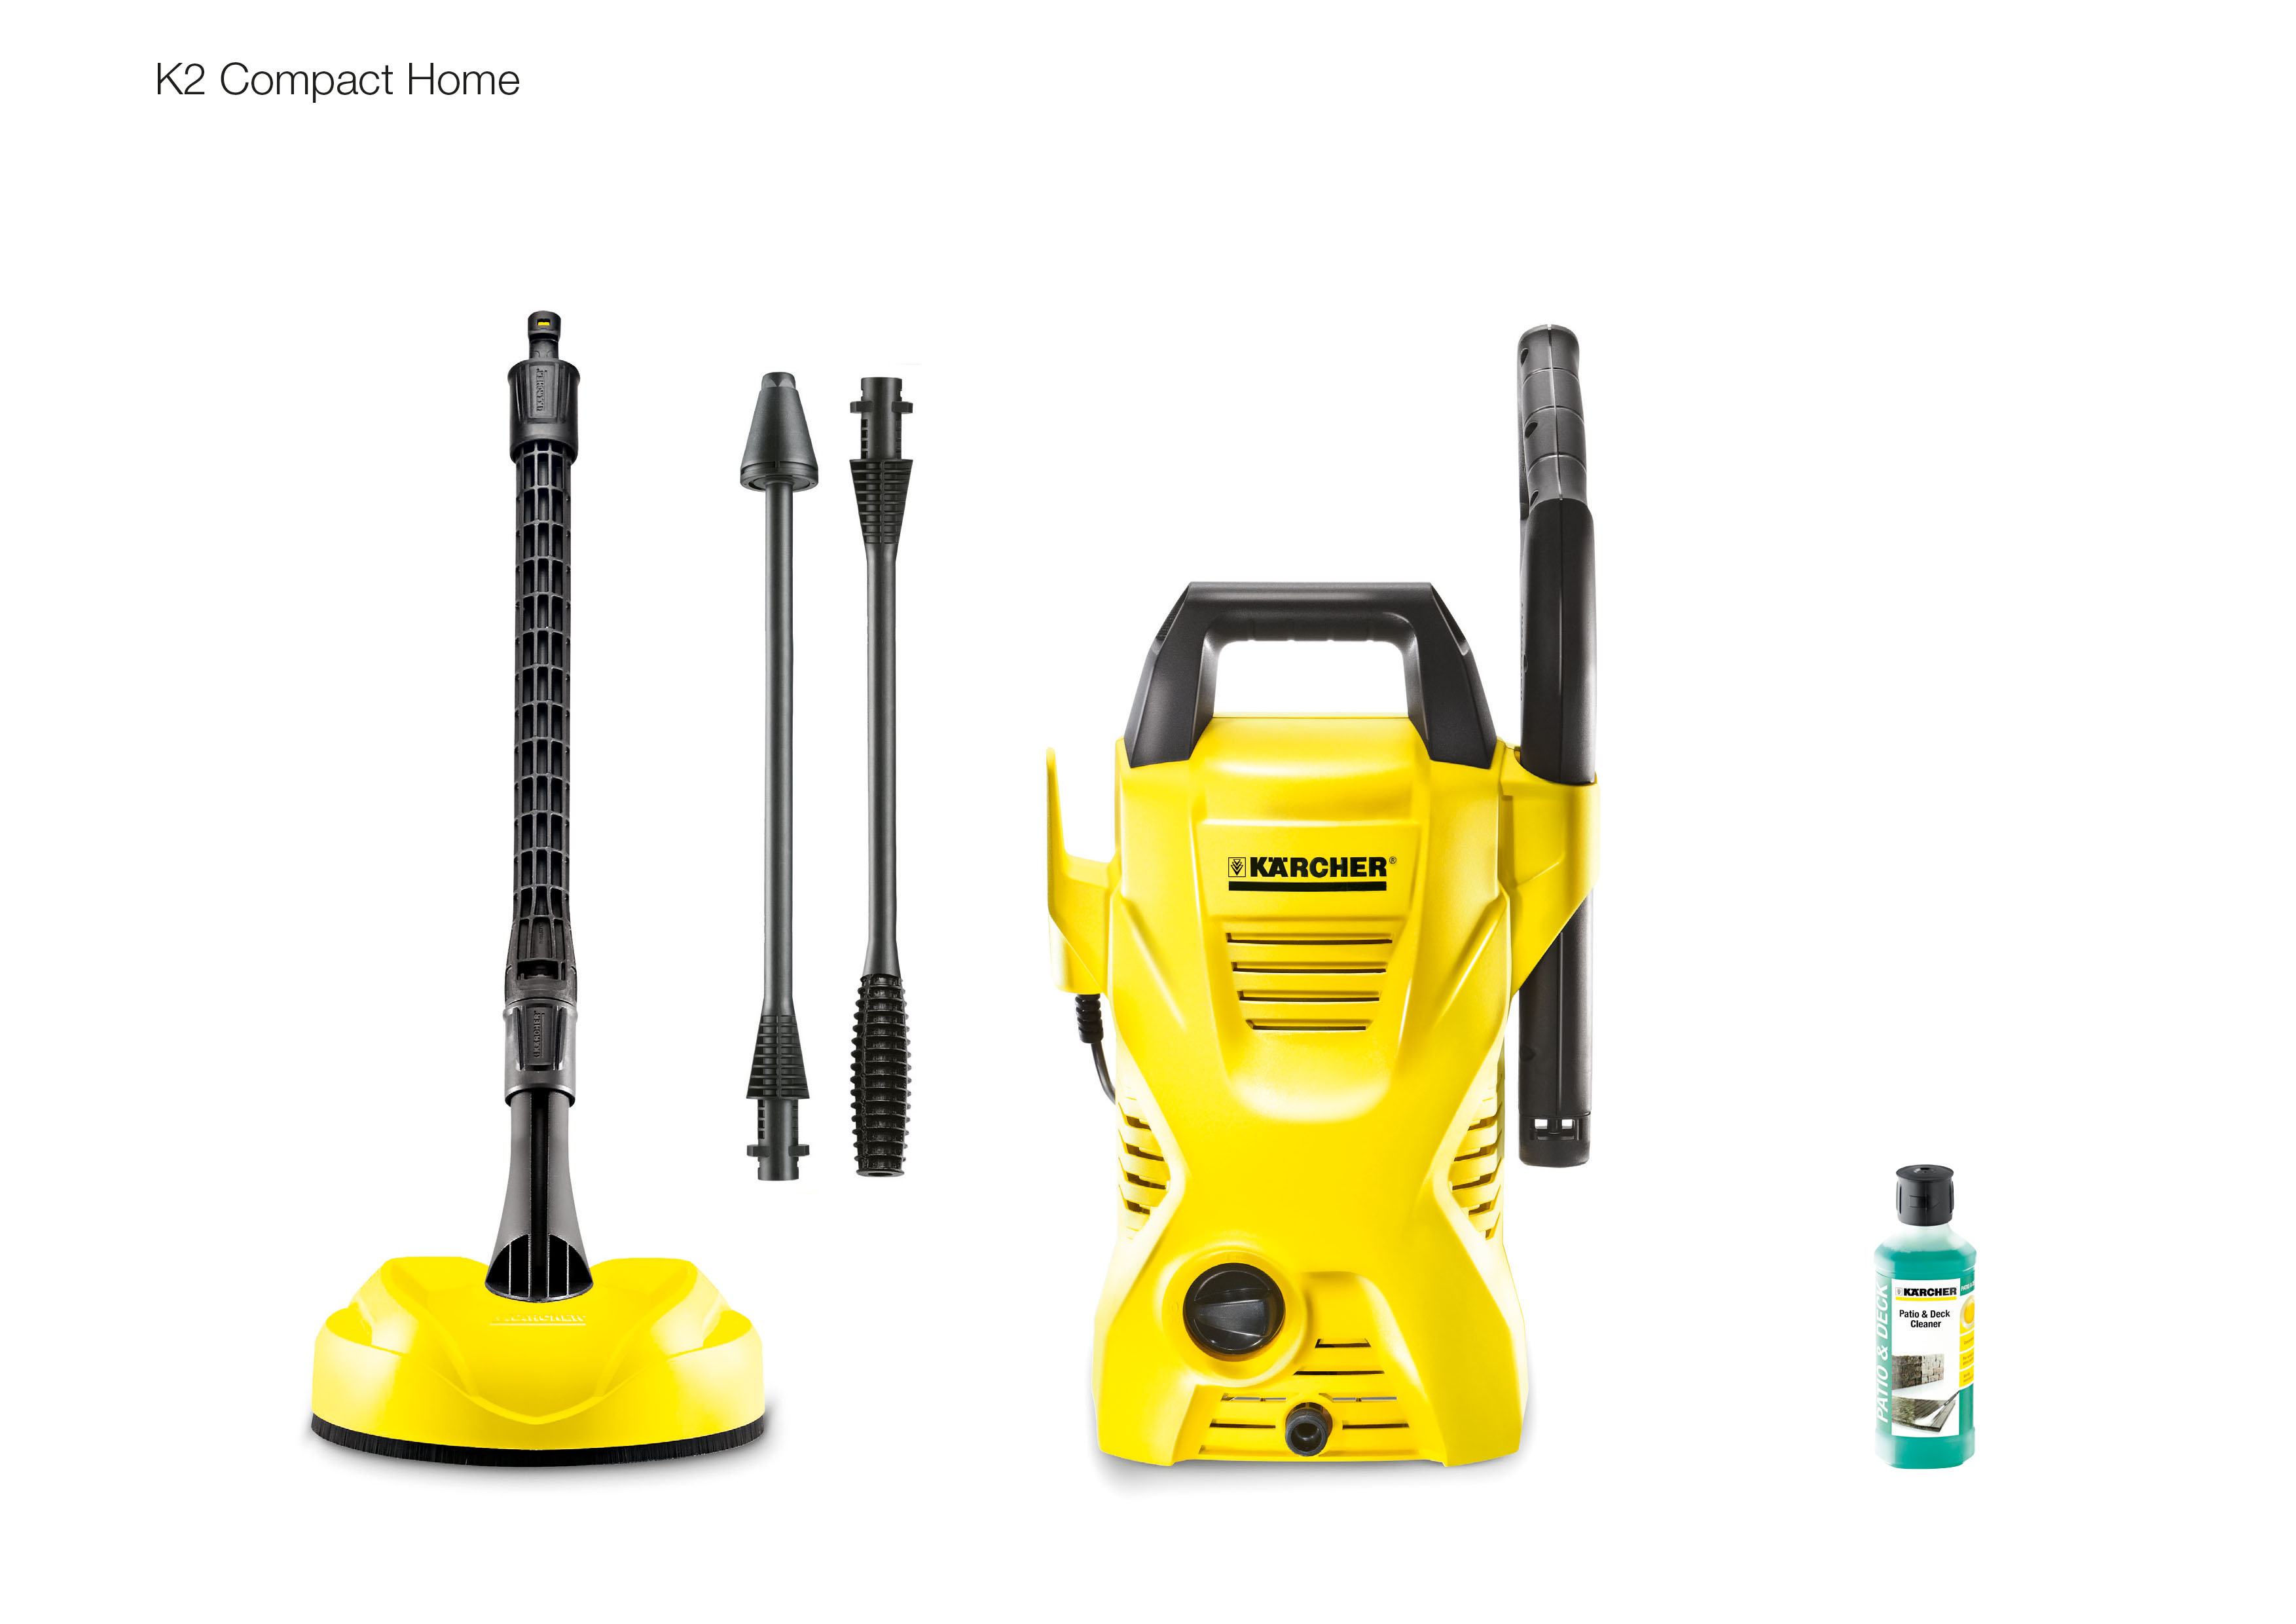 k rcher k2 compact home air cooled pressure washer amazon. Black Bedroom Furniture Sets. Home Design Ideas